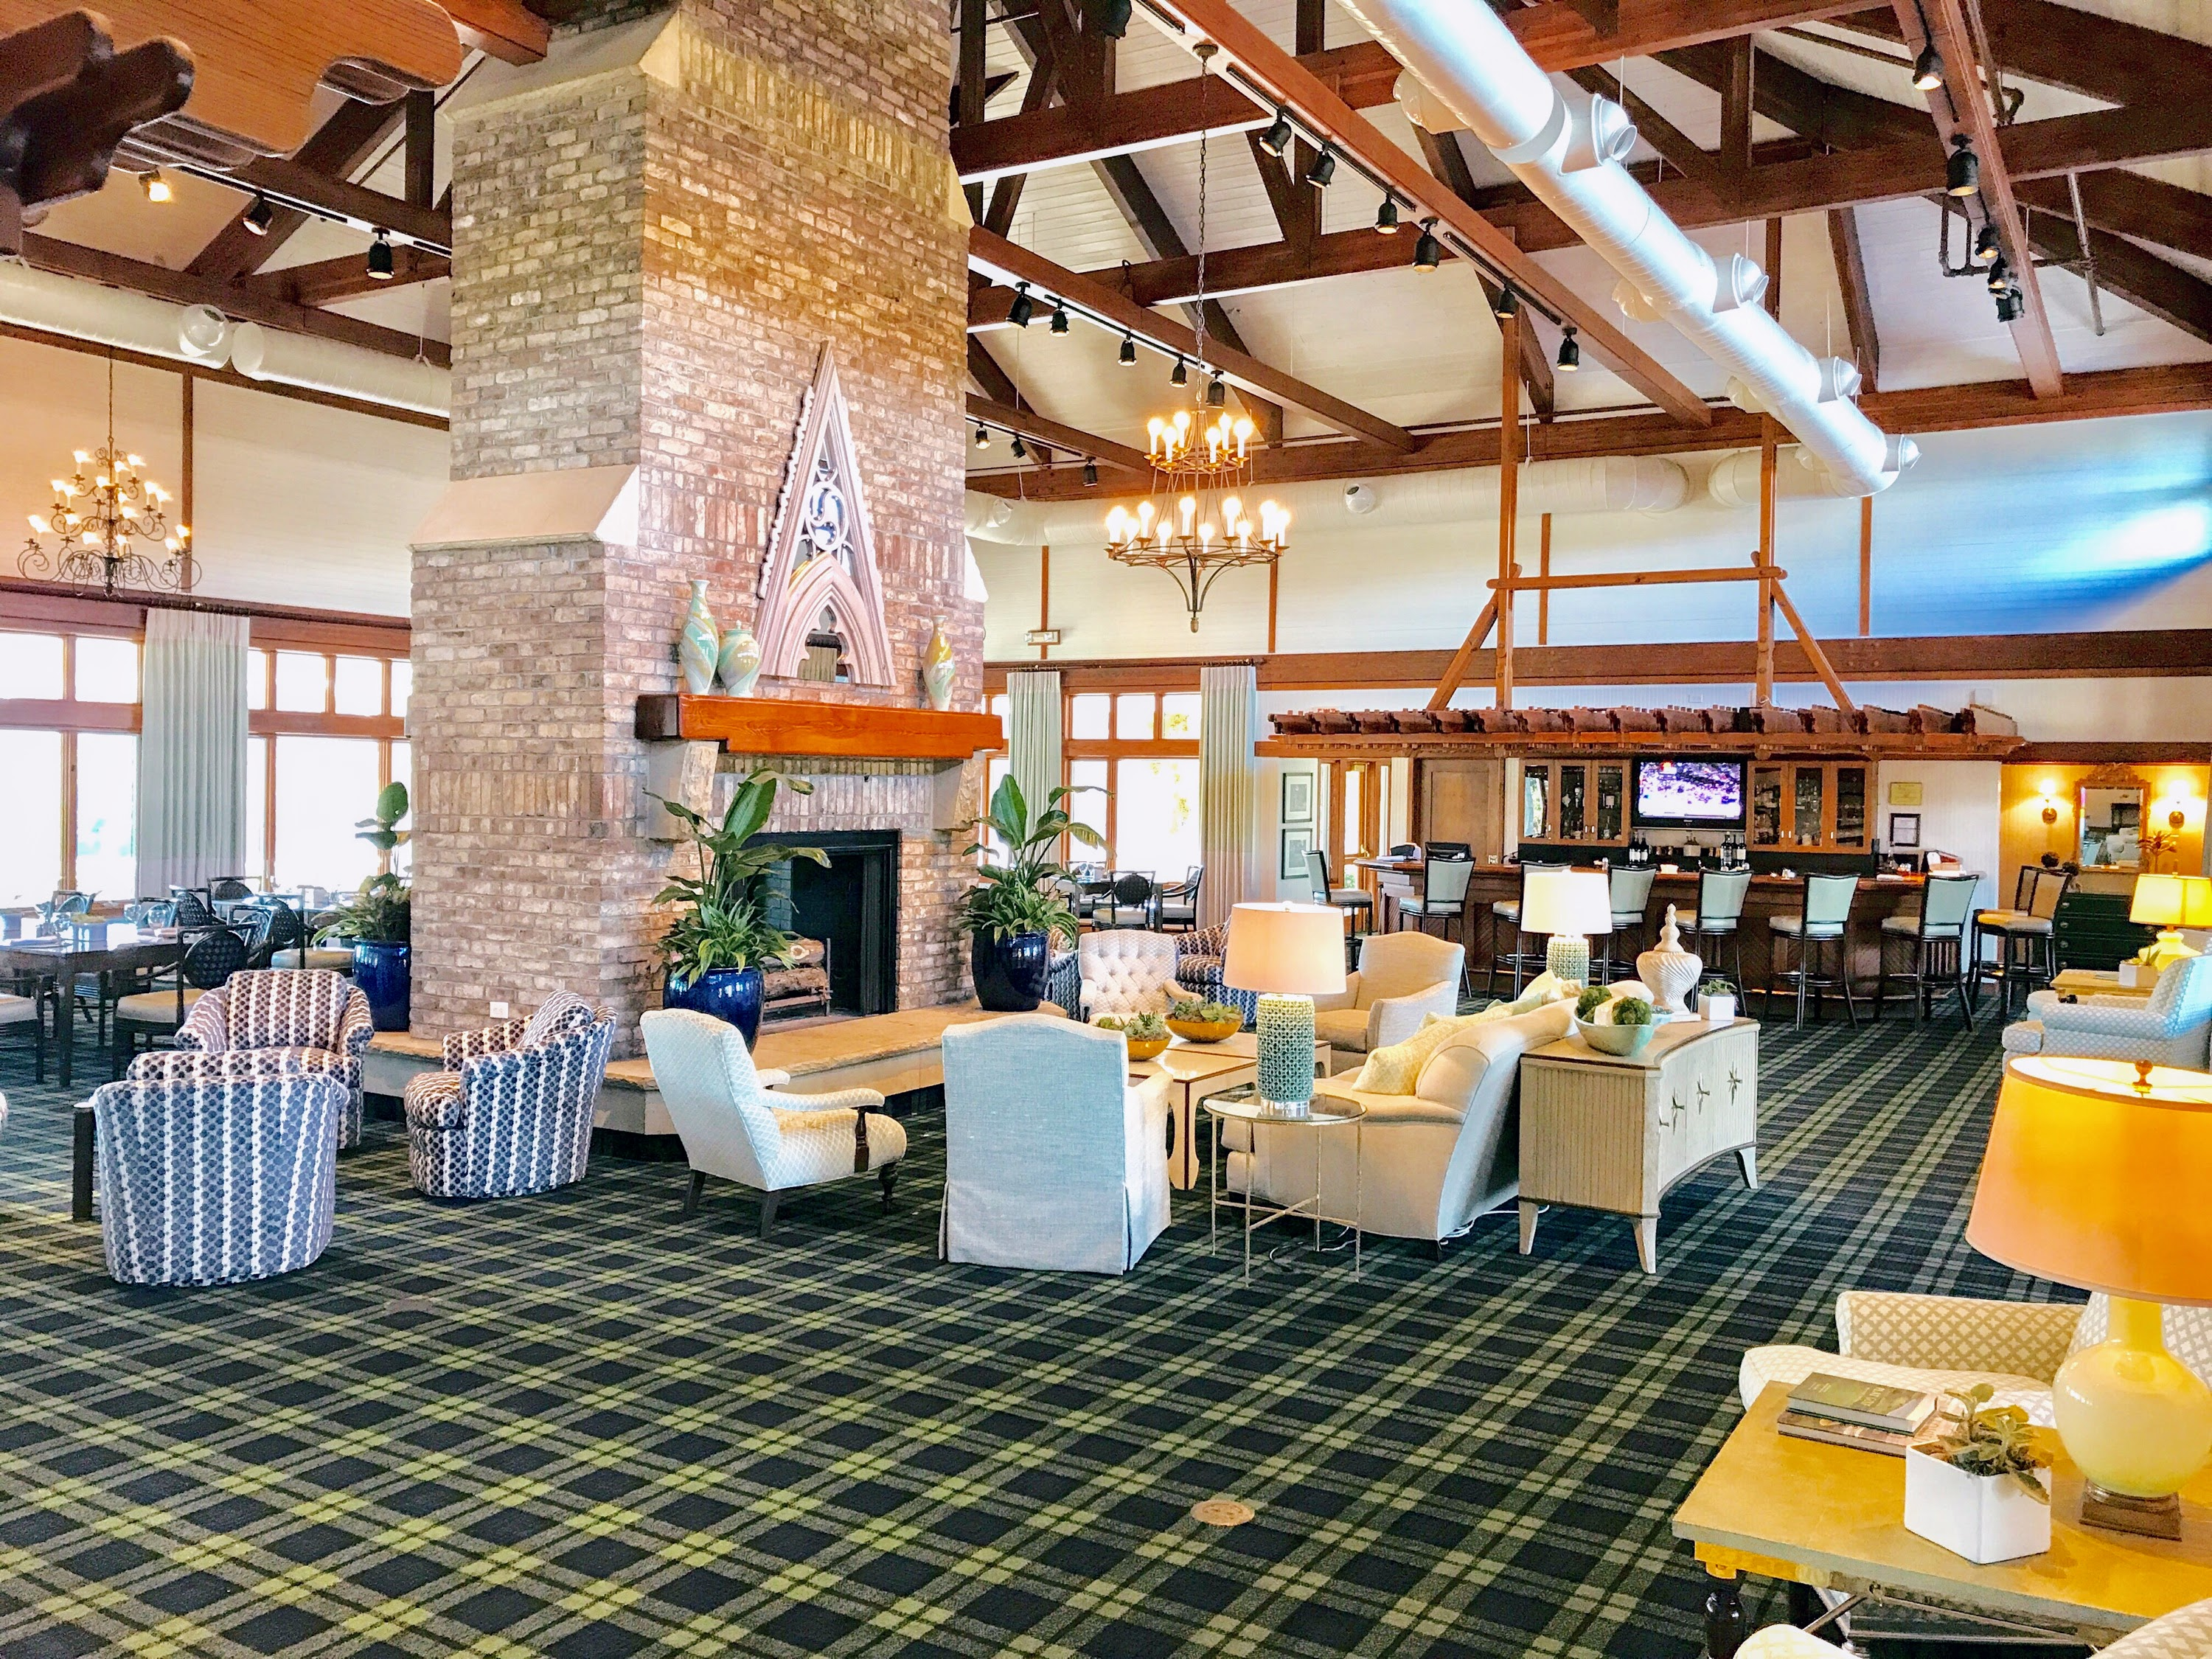 Eagle Point Golf Club - Clubhouse - Interior 1